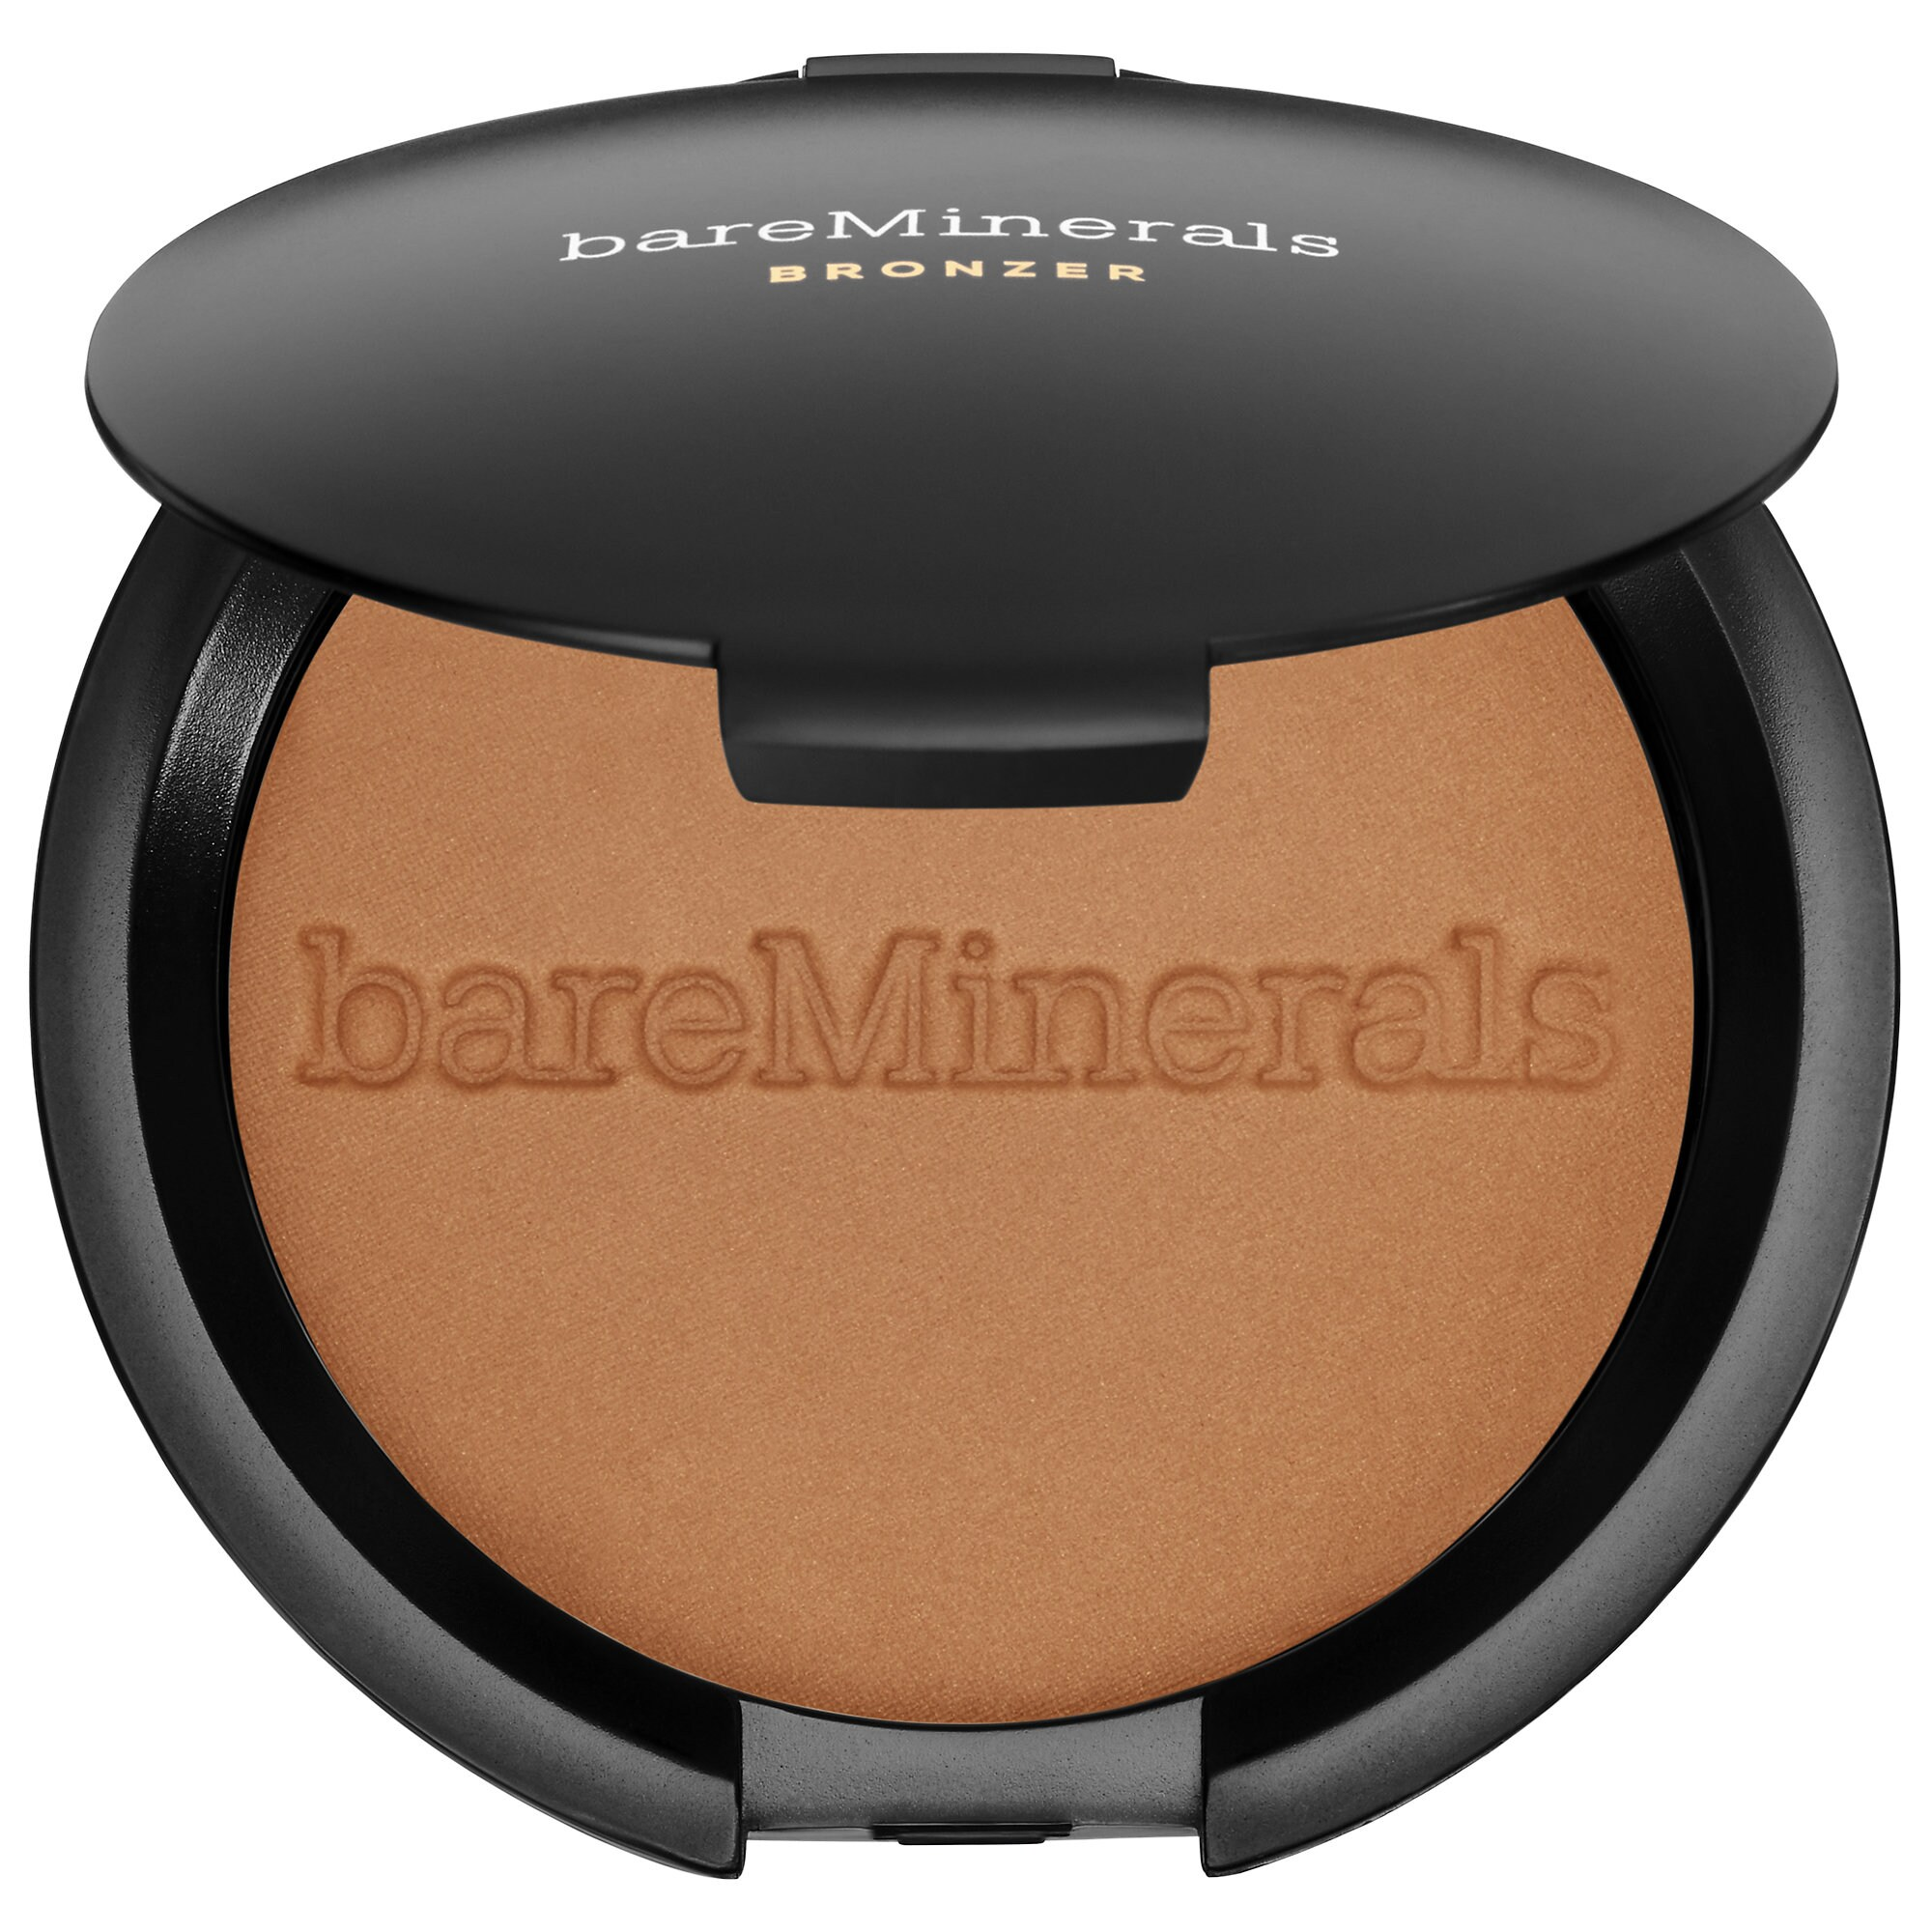 Bareminerals - Endless Summer Bronzer